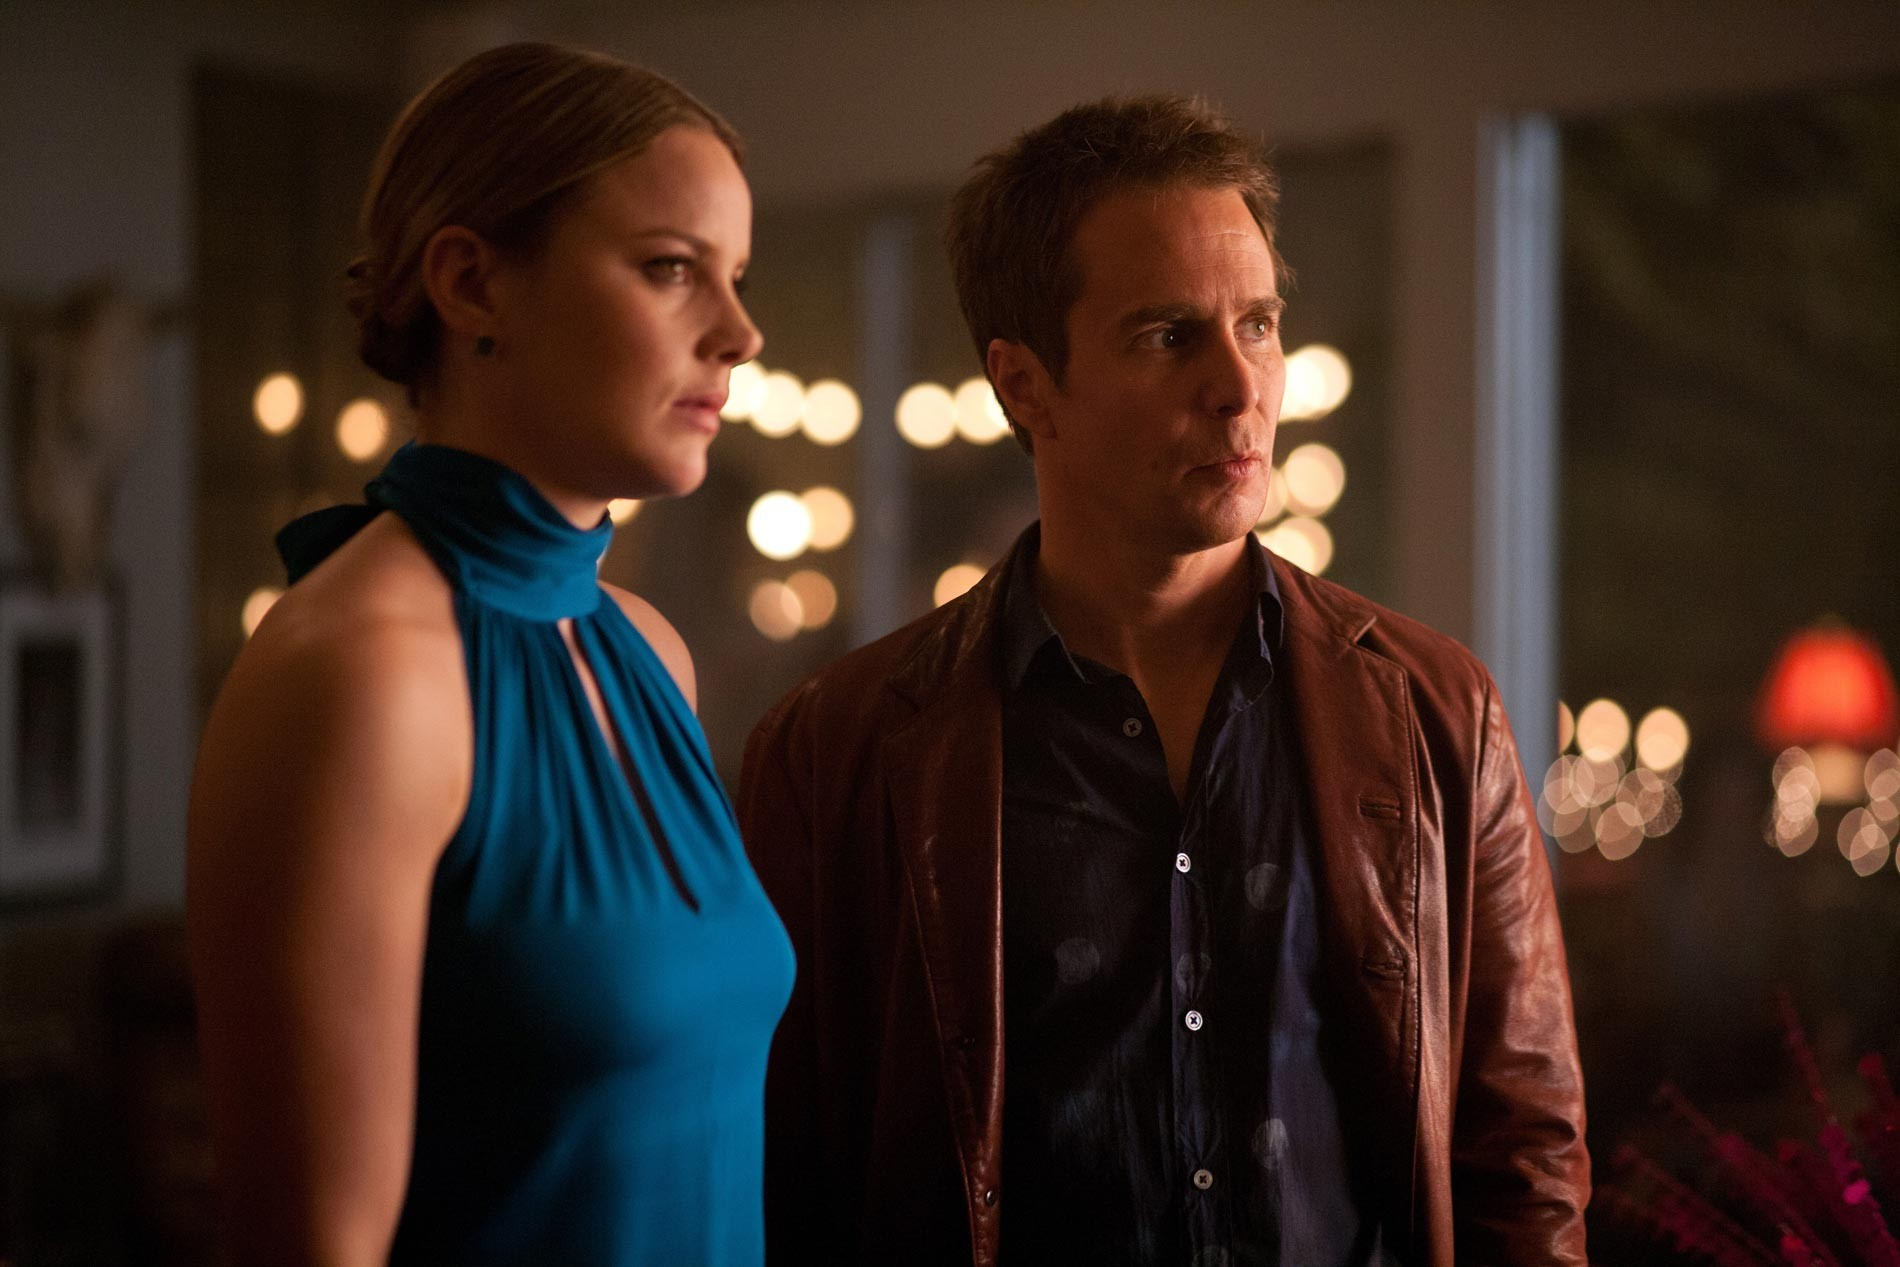 Abbie Cornish stars as Kaya and Sam Rockwell stars as Billy in CBS Films' Seven Psychopaths (2012)